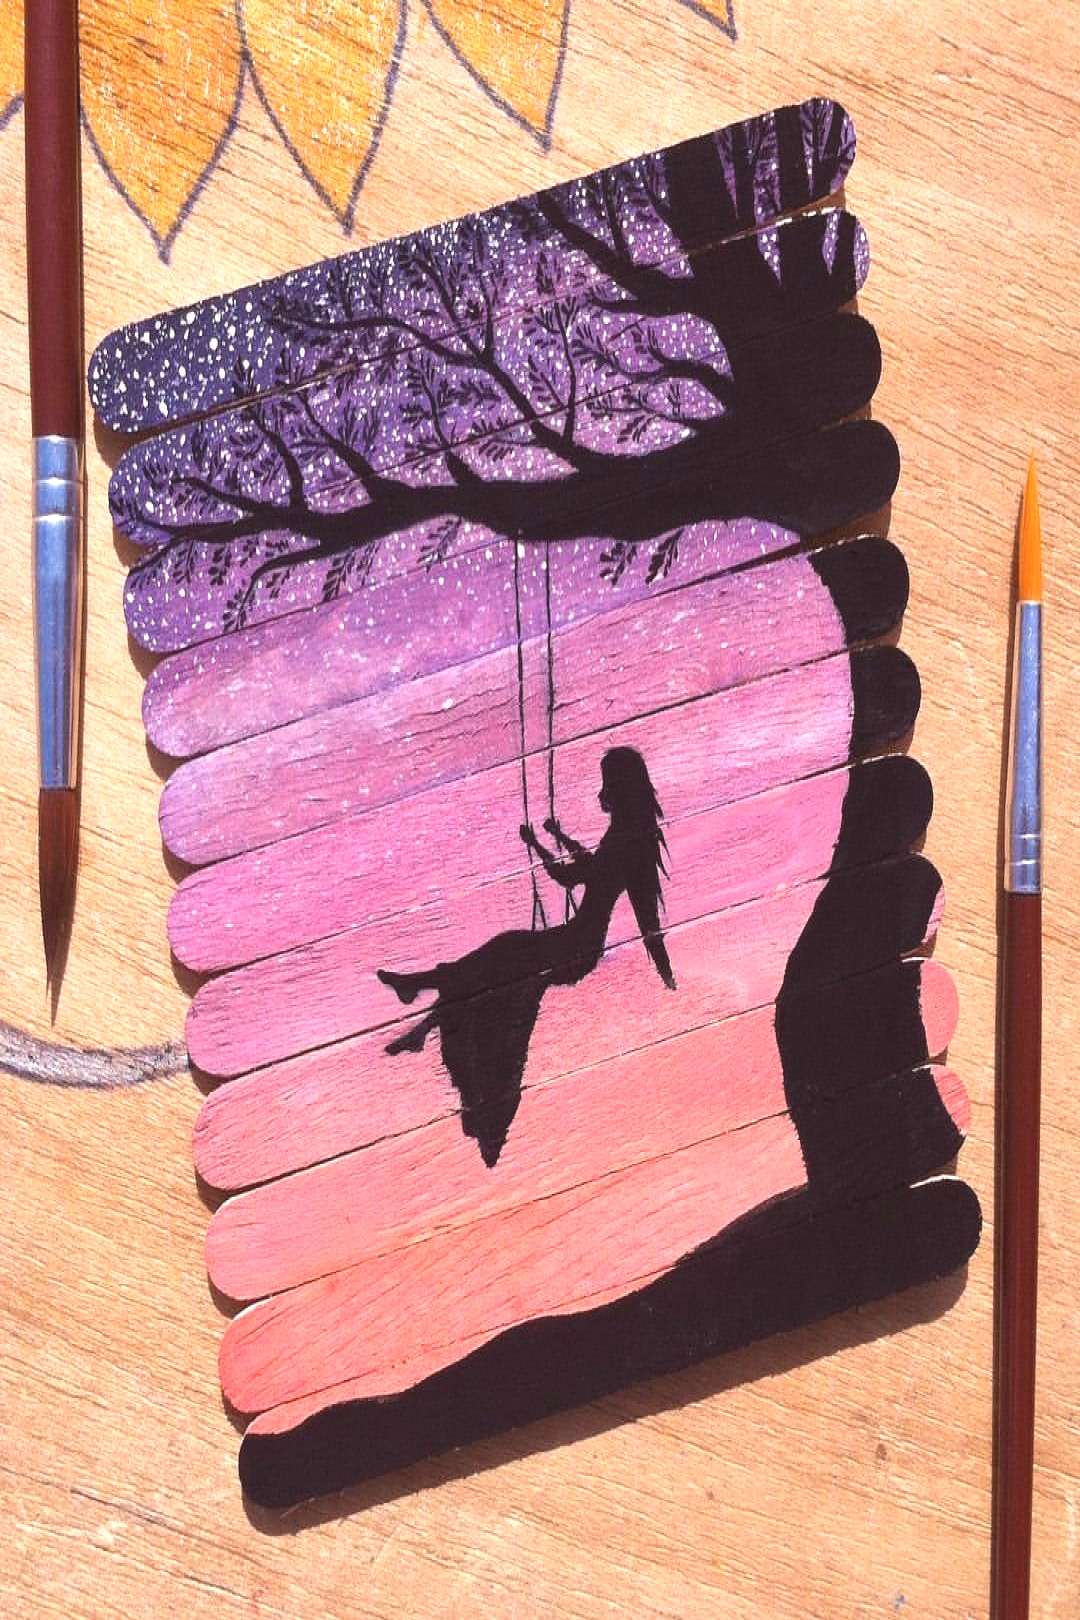 """Farwa on Instagram """"The most fun thing about my childhood was swing. So this painting is qui..."""